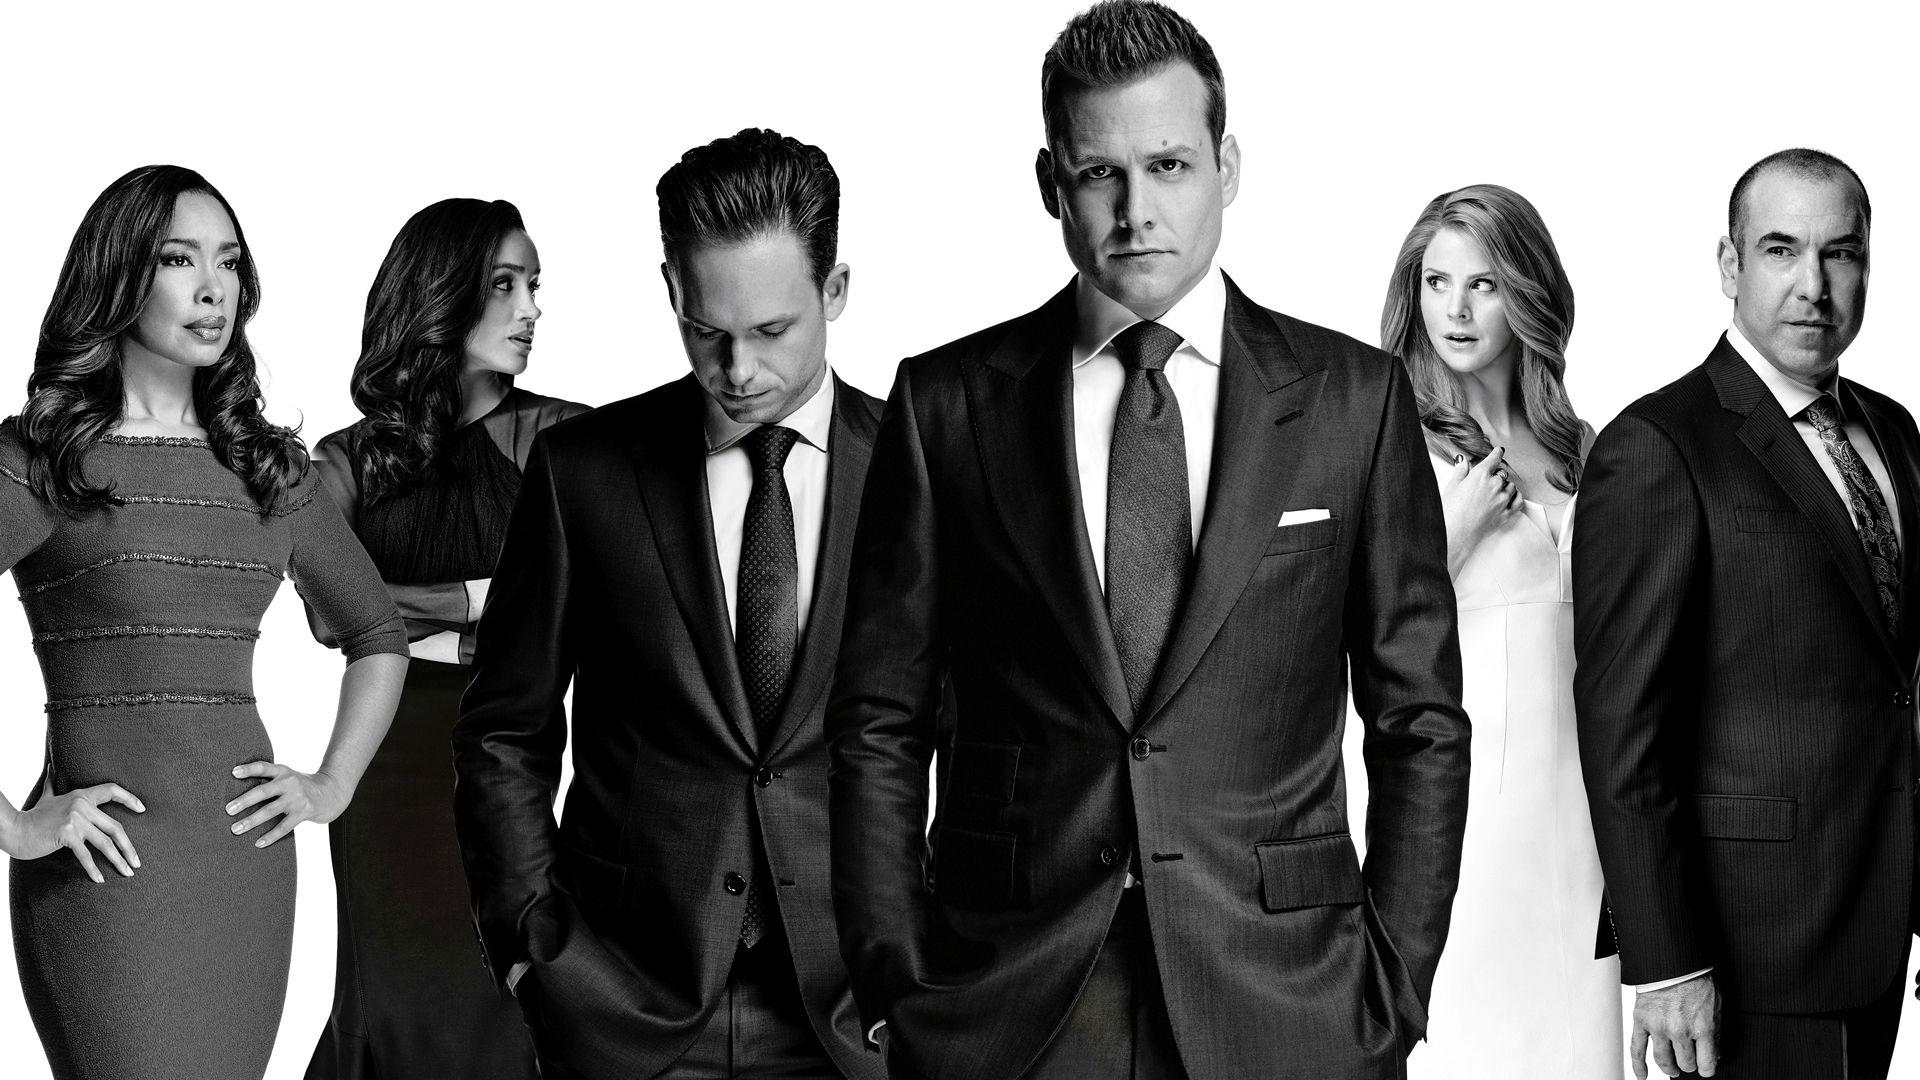 Suits Wallpapers, Pictures, Images